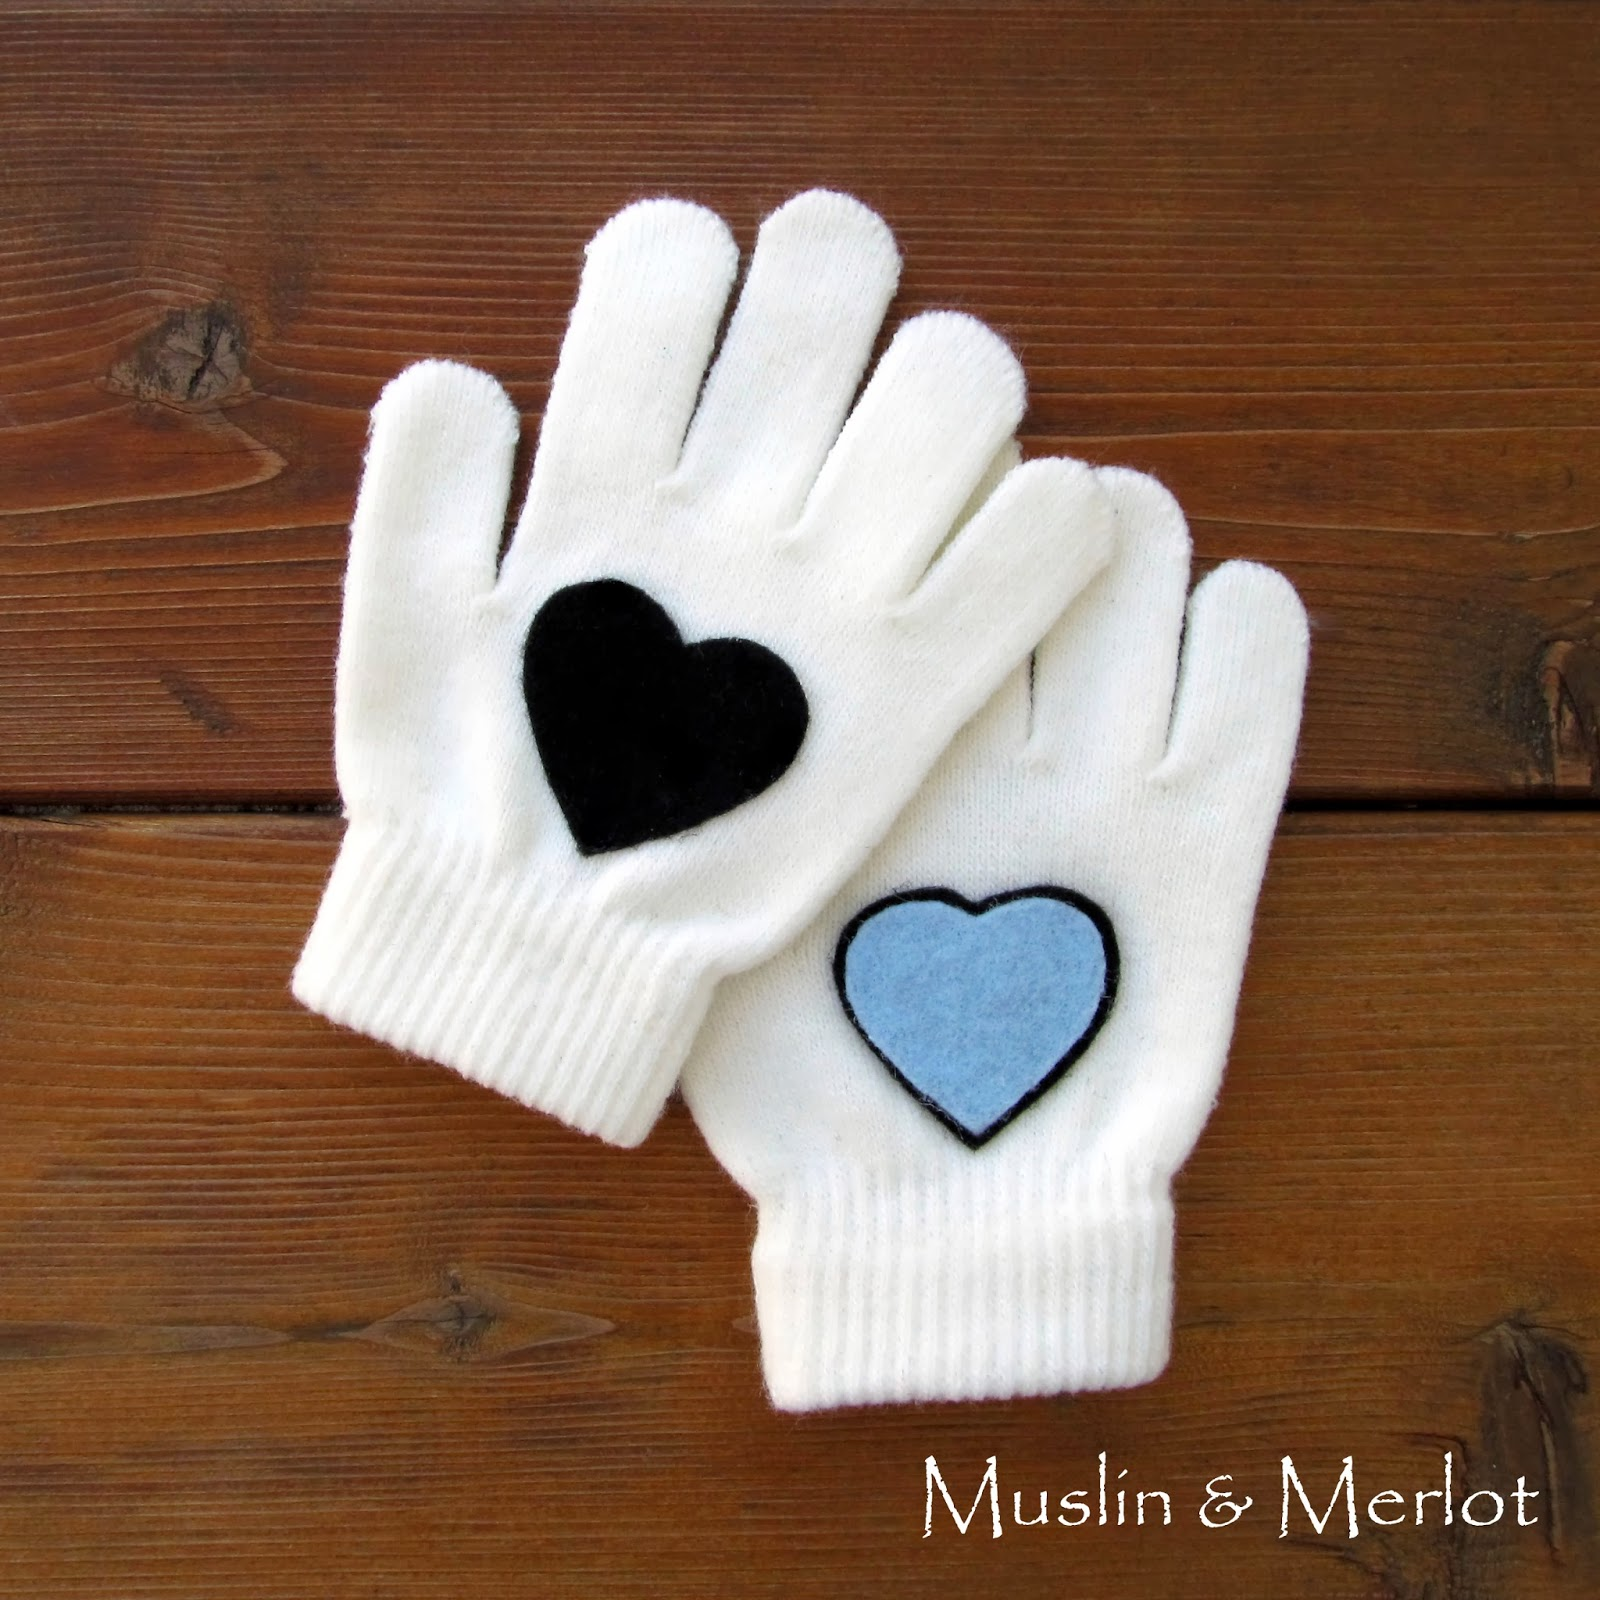 Felt Heart Gloves by Muslin & Merlot